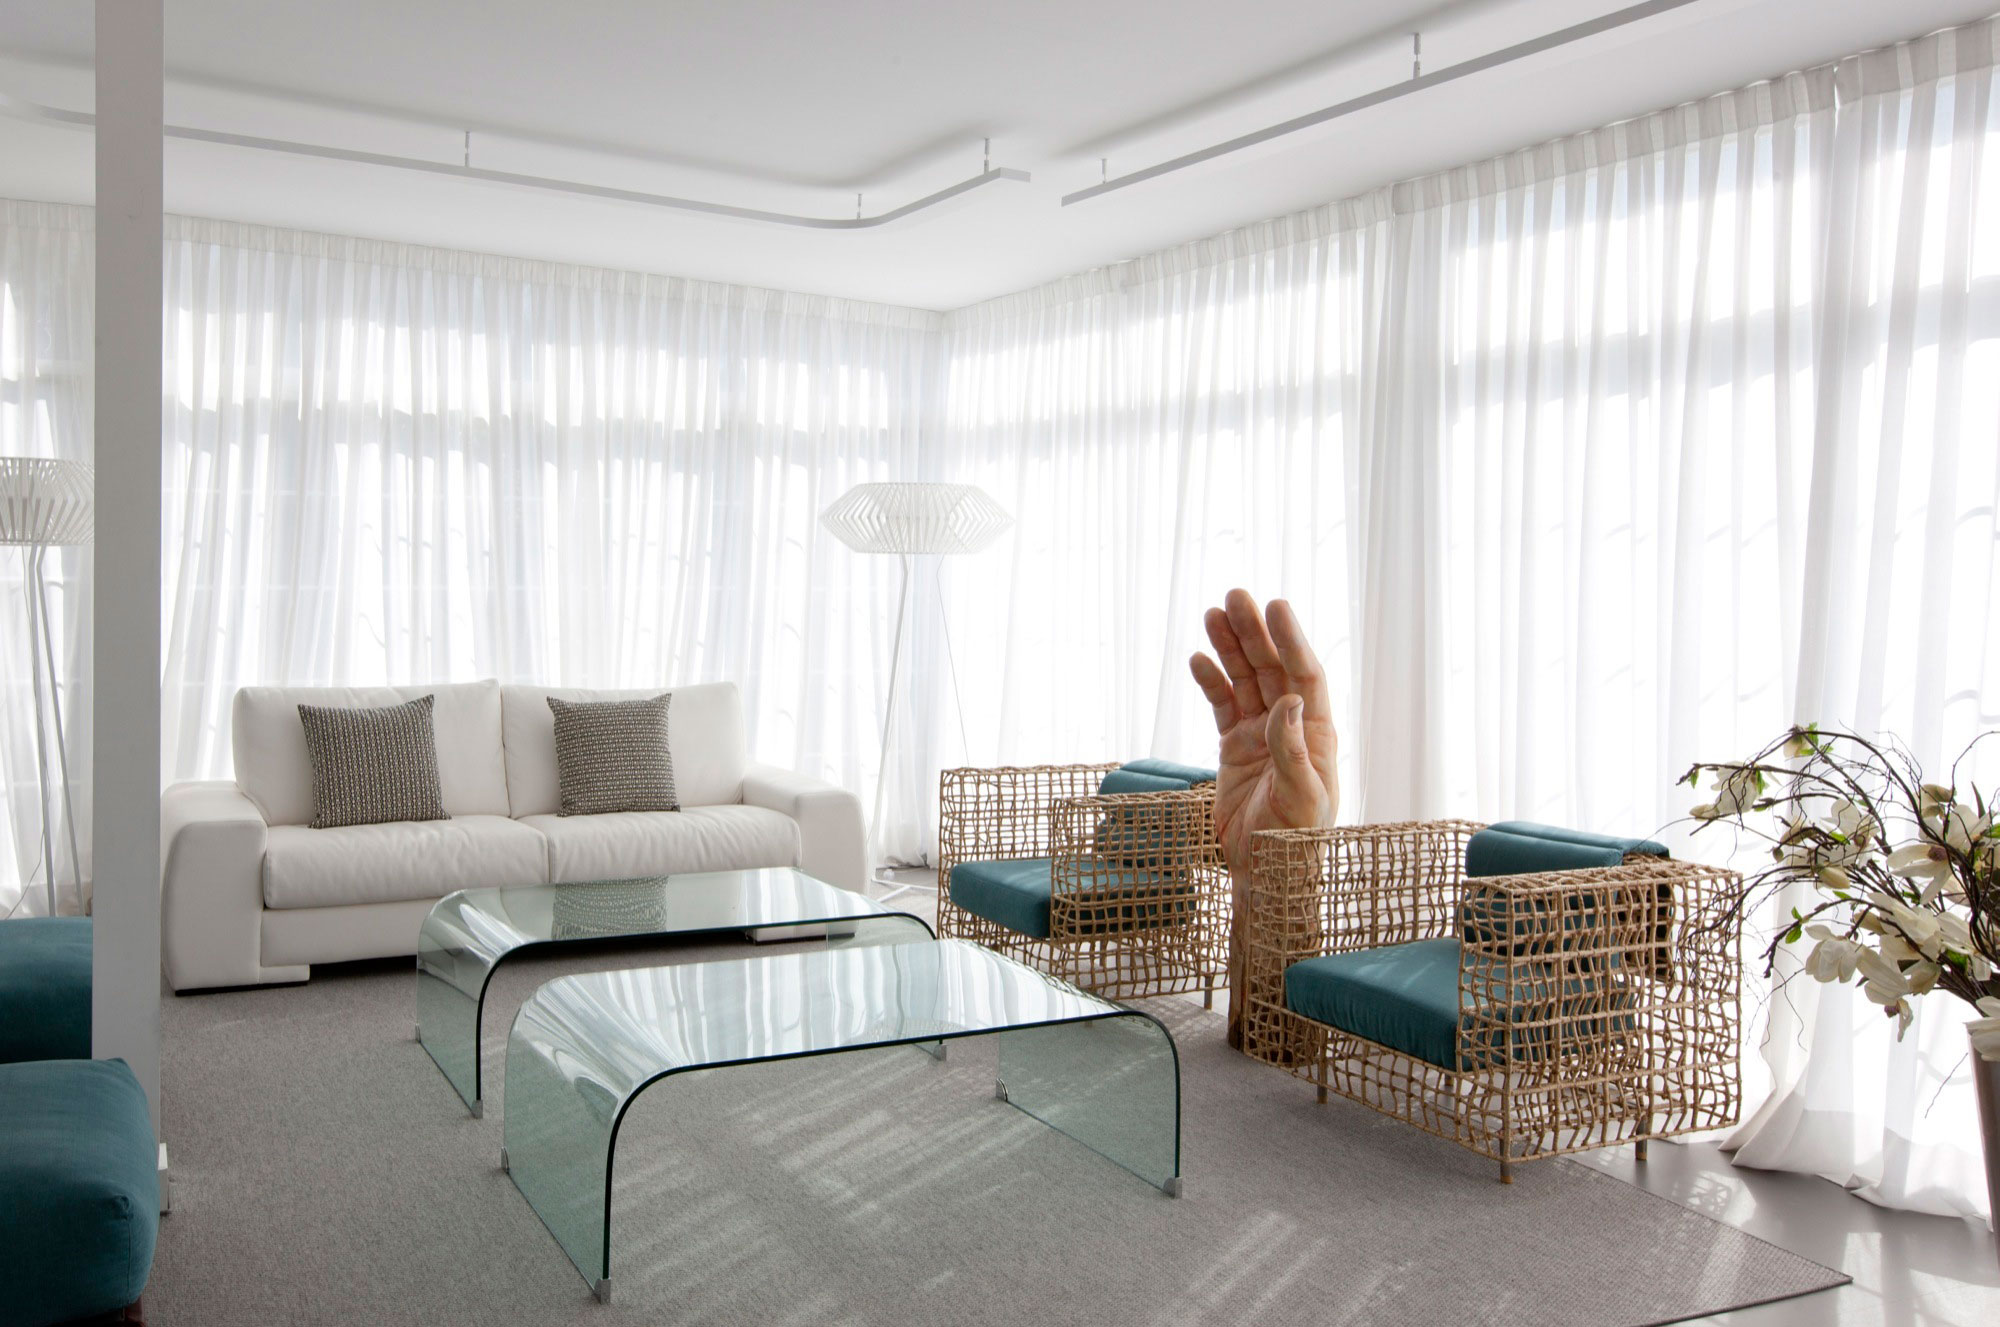 Apartment in Madrid by IlmioDesign (1)